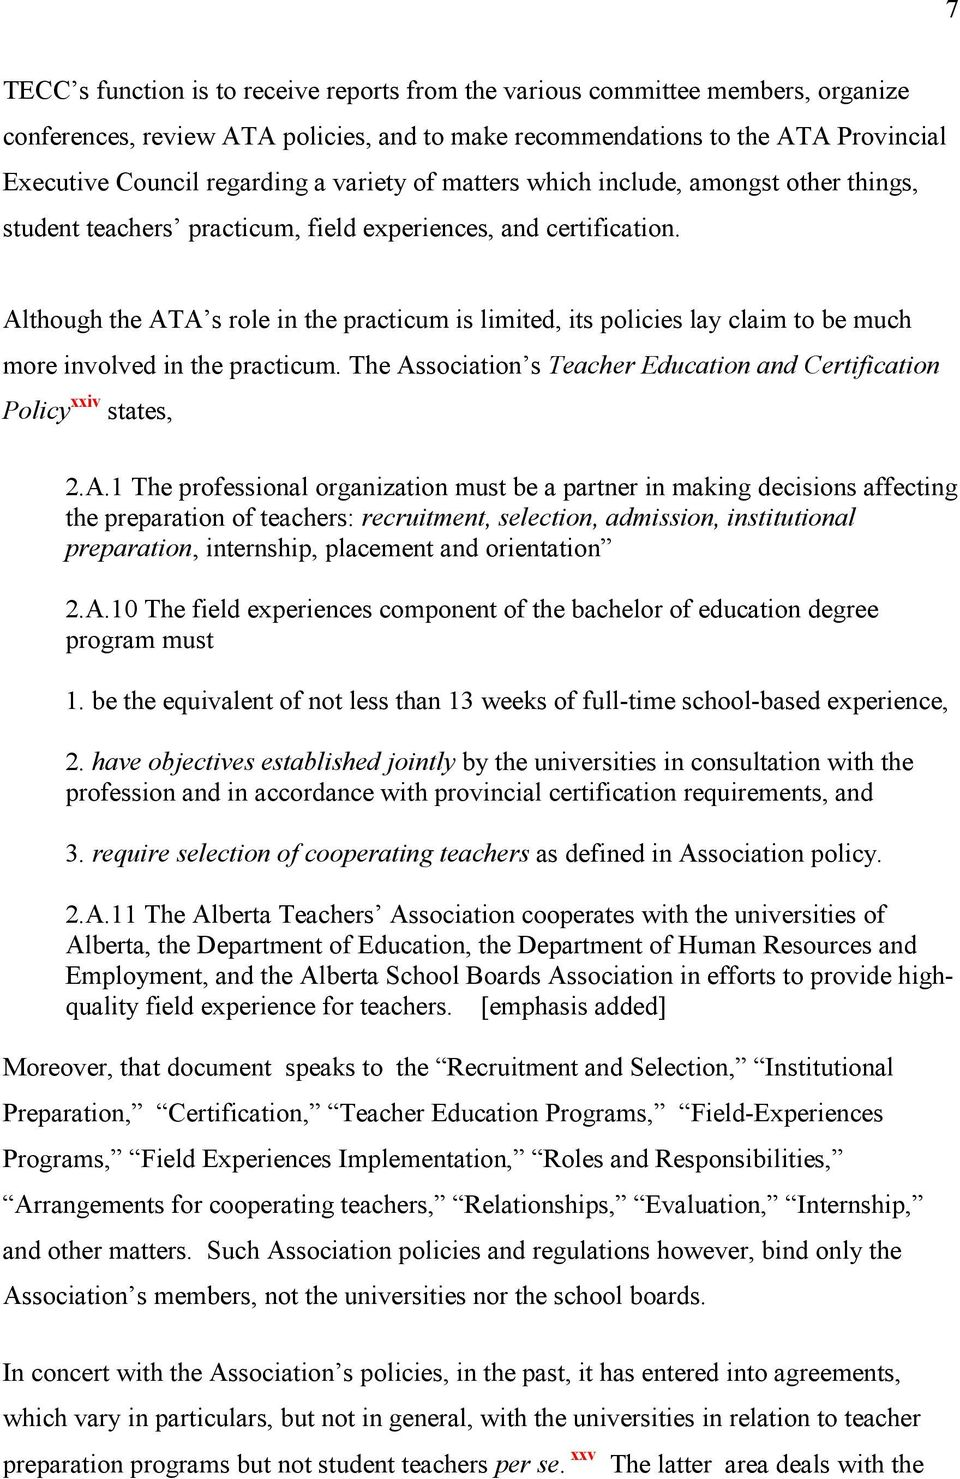 Although the ATA s role in the practicum is limited, its policies lay claim to be much more involved in the practicum. The Association s Teacher Education and Certification Policy xxiv states, 2.A.1